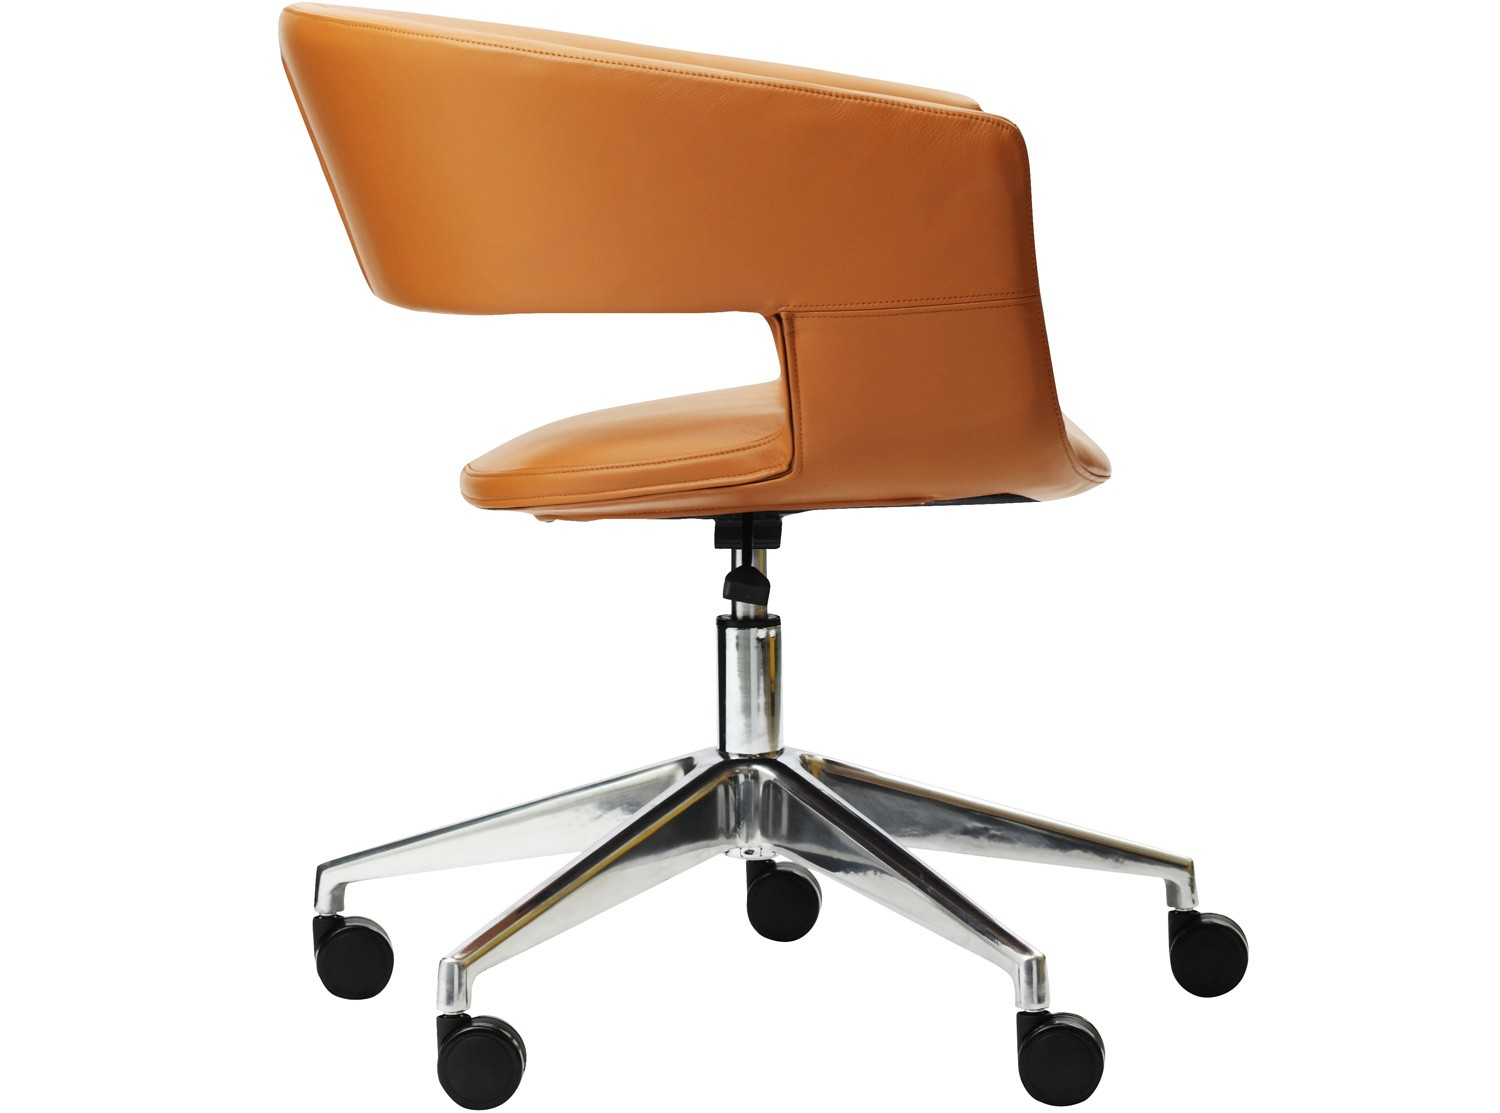 Desk Chairs Headaround Desk Chair On Wheels Desk Chairs